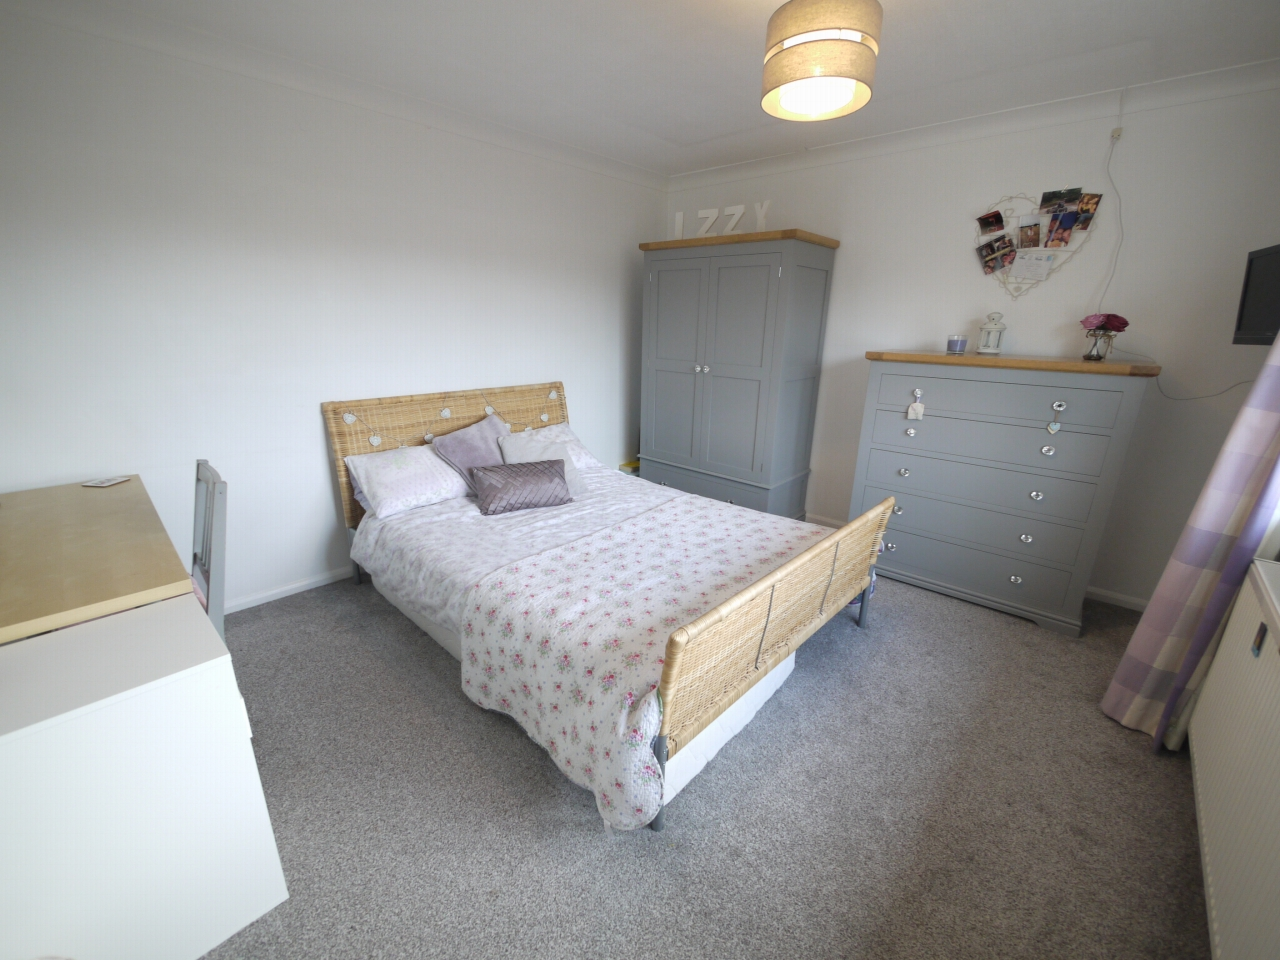 4 bedroom detached house For Sale in Brighouse - Photograph 13.